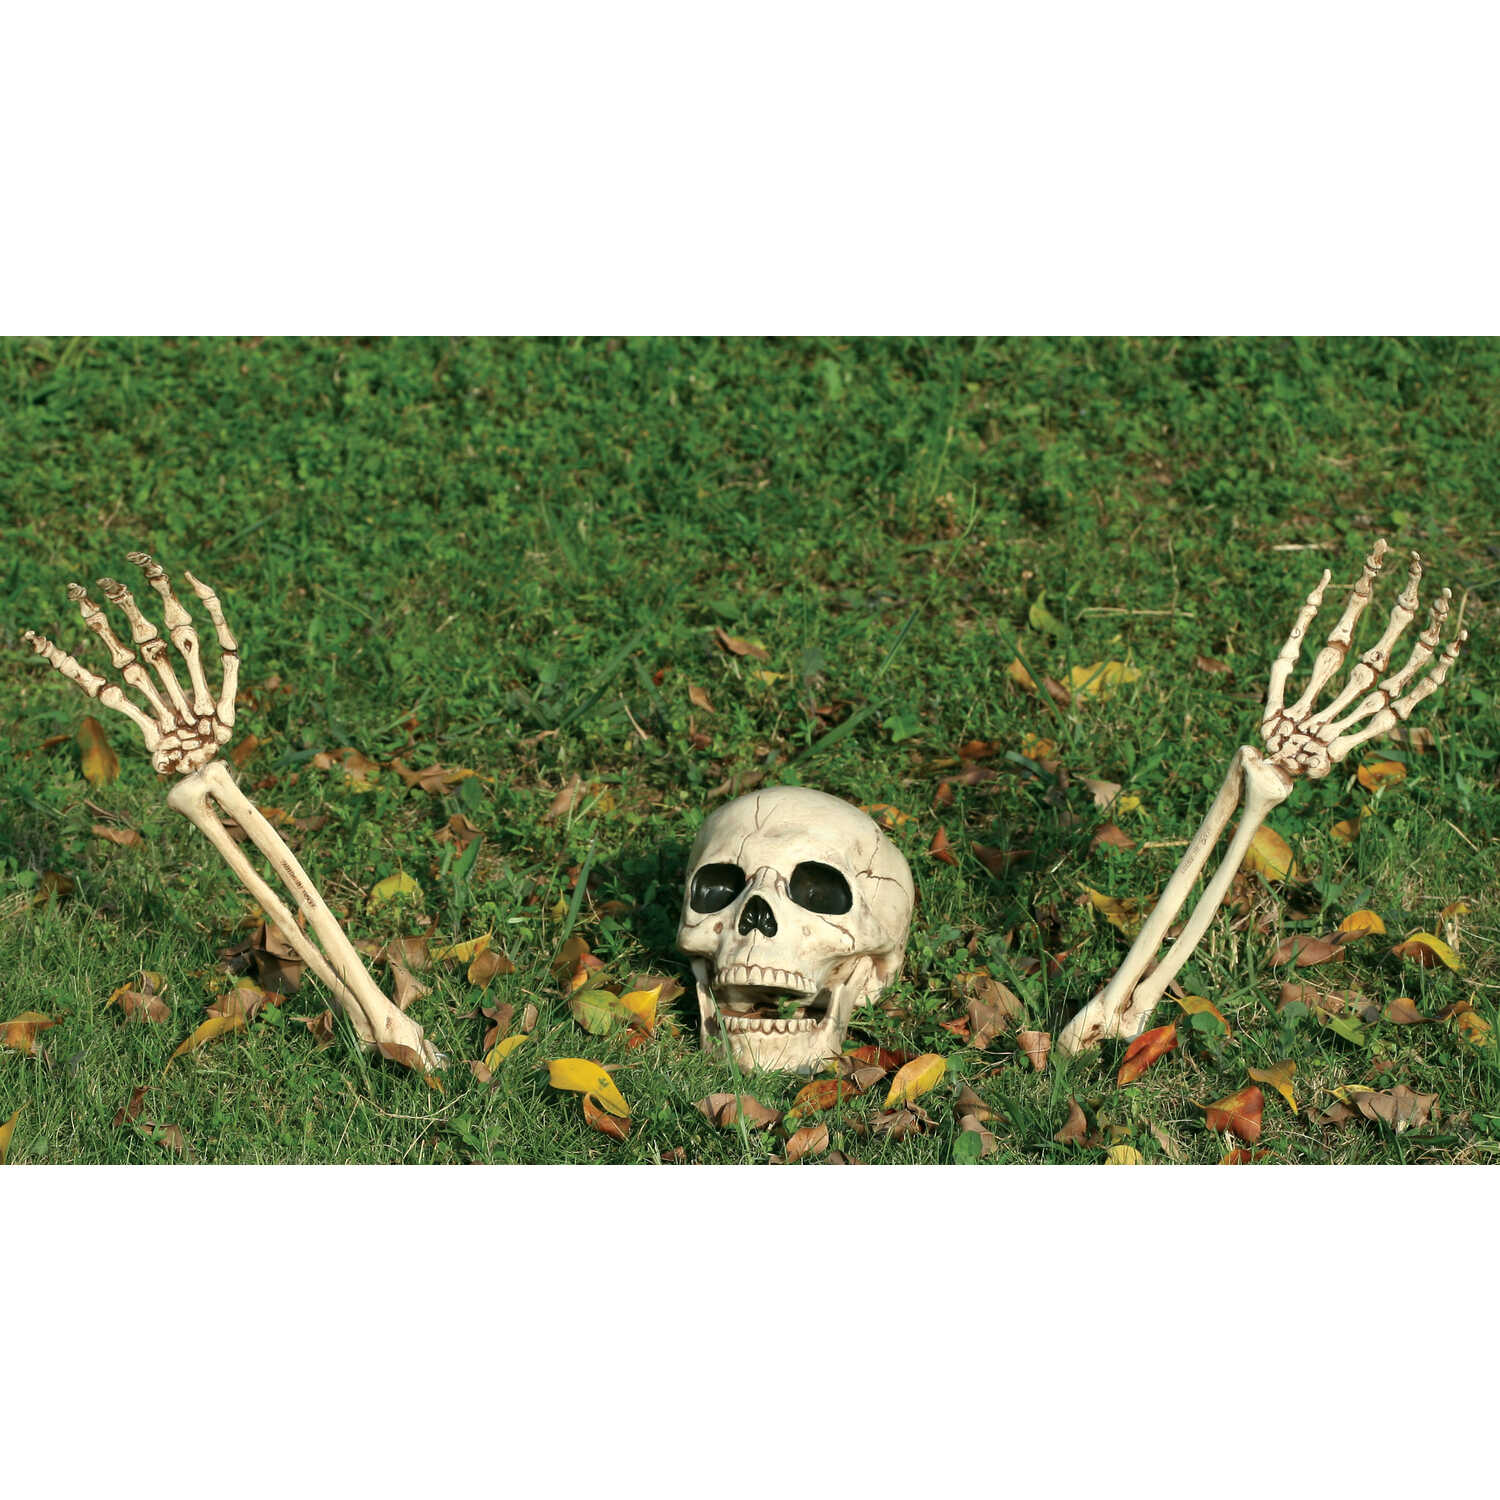 Seasons  Ground Breakers Skull and Arms  Halloween Decoration  14.5 in. H x 5 in. W x 5 in. L 3 pc.